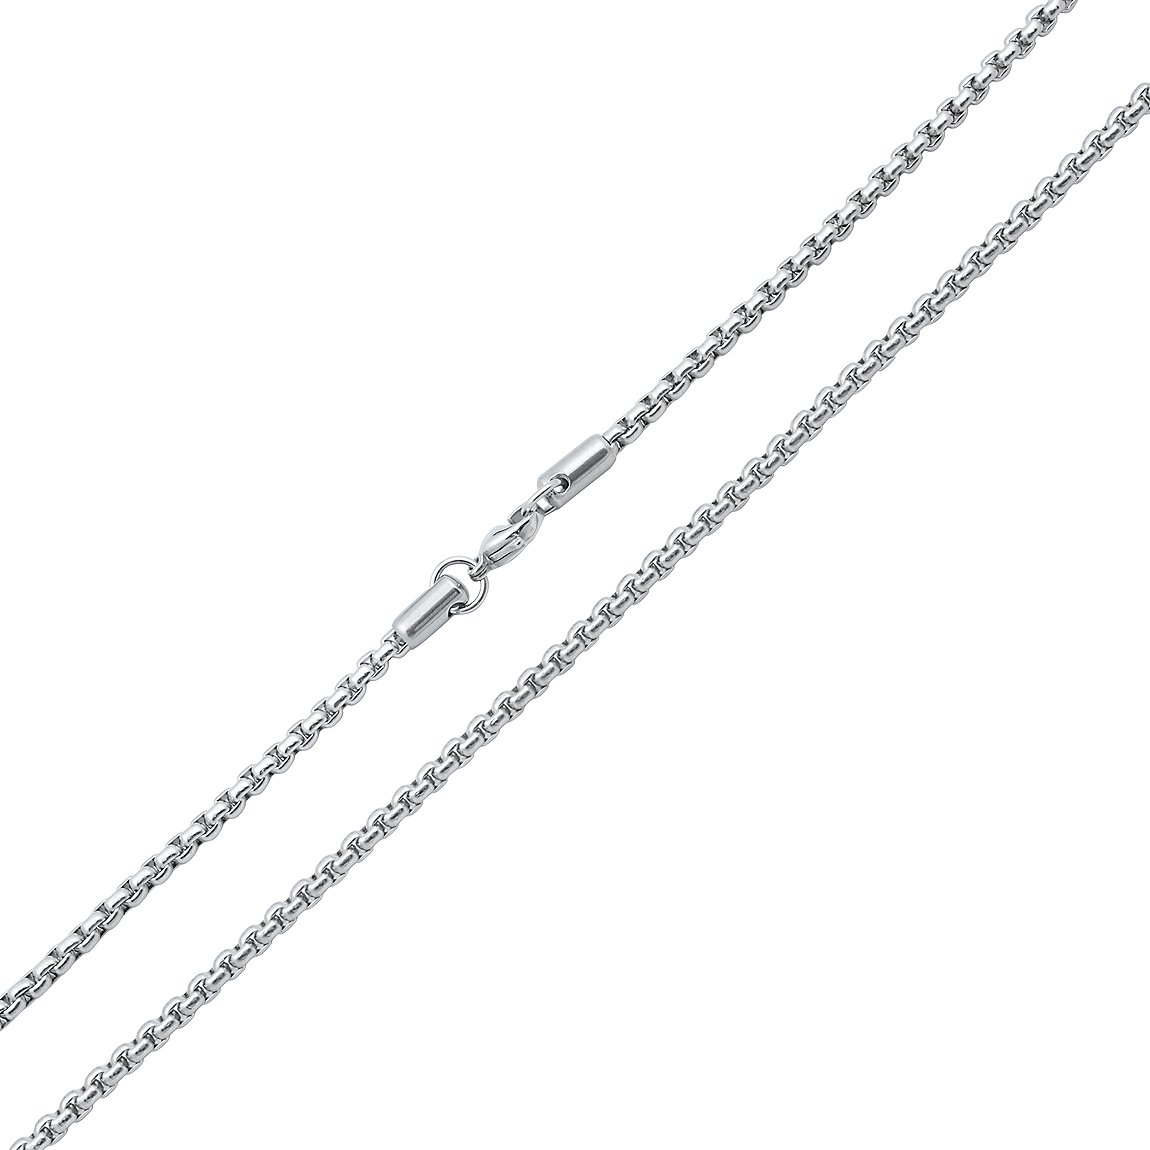 Stainless Steel Round Box Chain 2.5mm - 24''